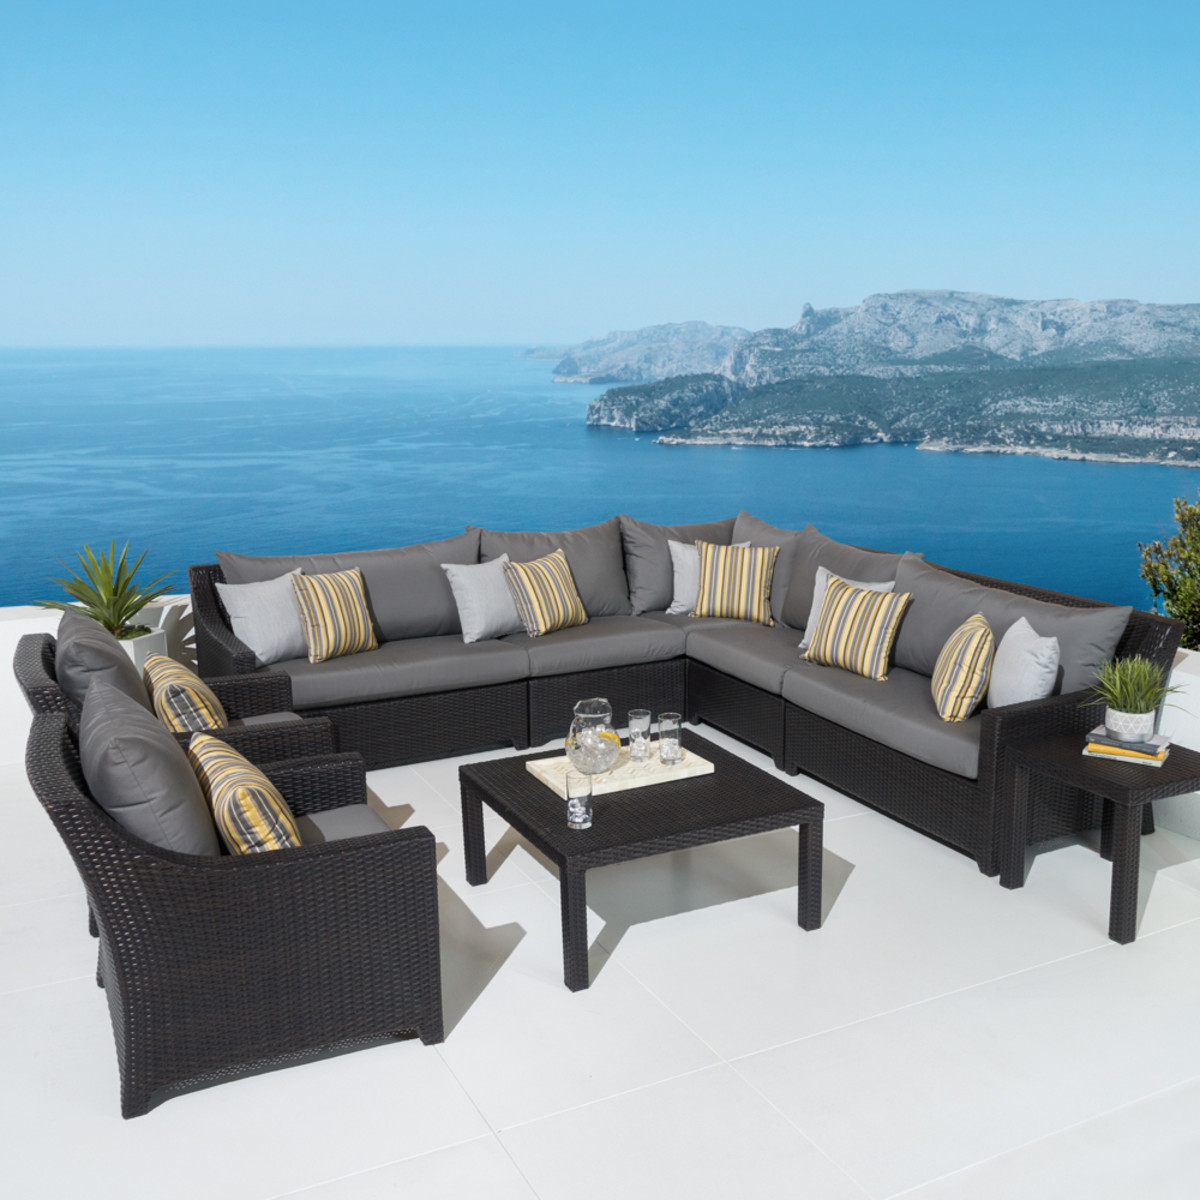 Deco™ 9 Piece Sectional and Club Set - Charcoal Gray